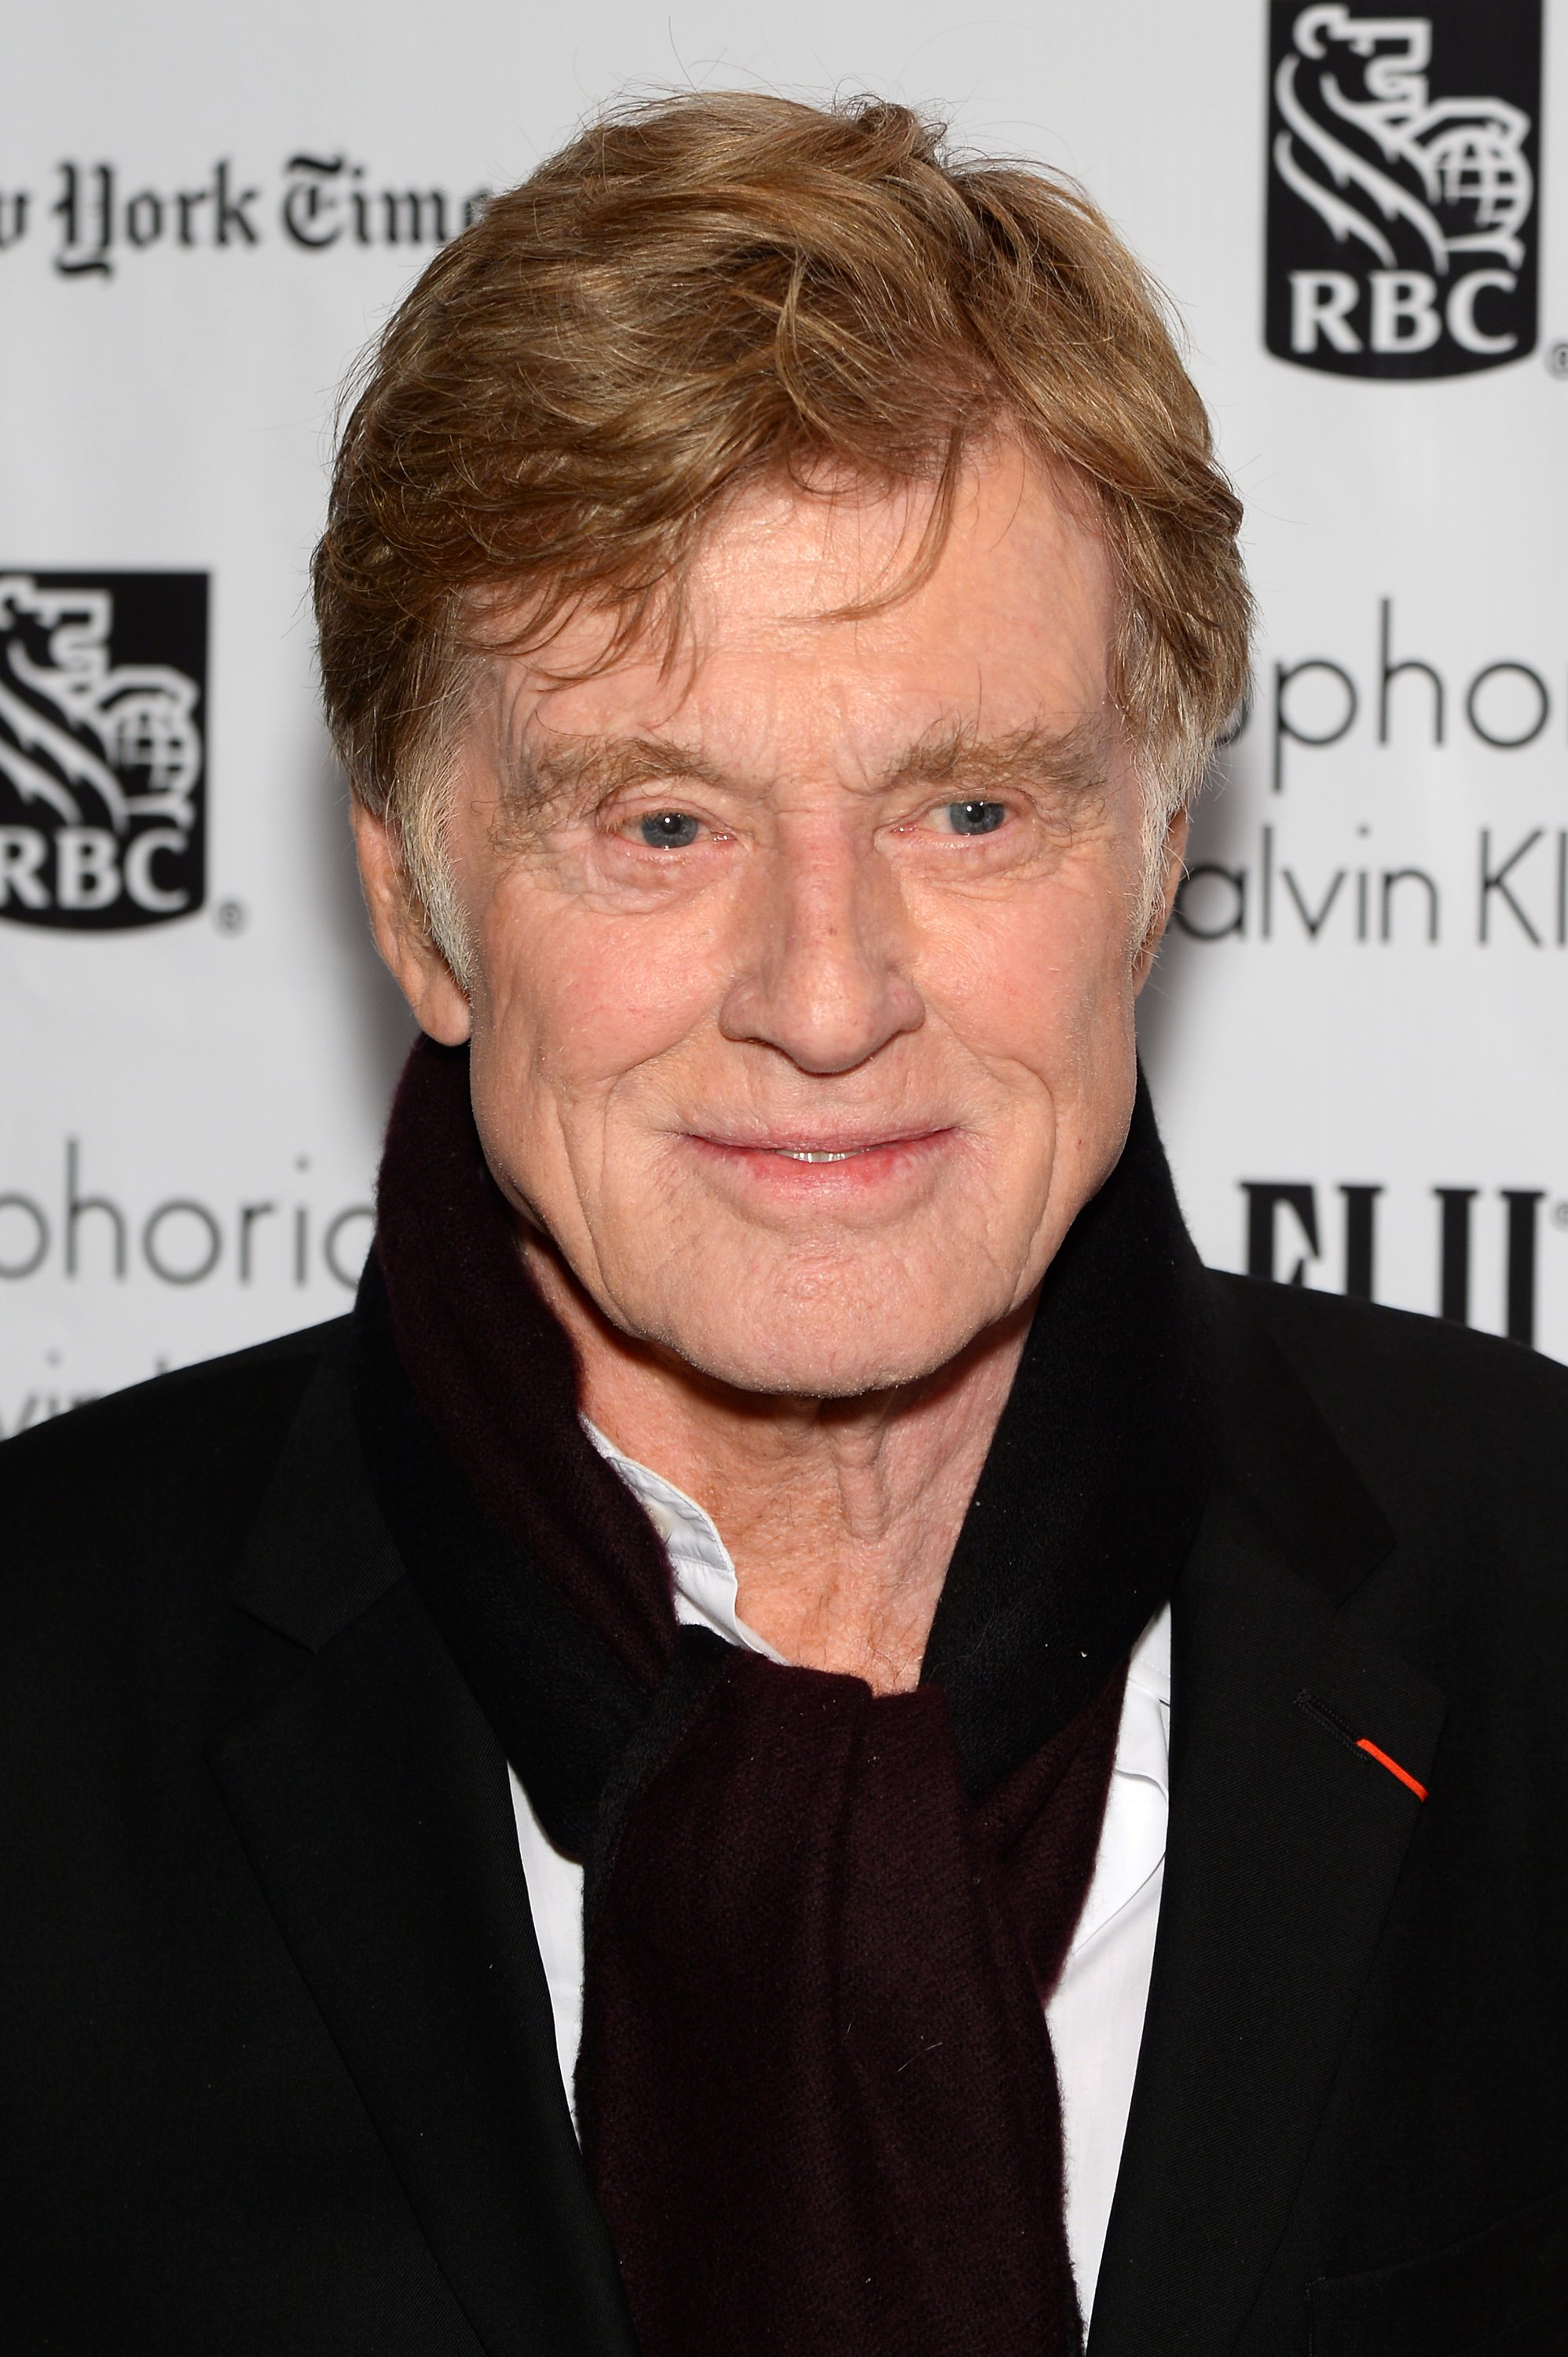 Robert Redford attends the 25th annual Gotham Independent Film Awards at Cipriani Wall Street on November 30, 2015 in New York City